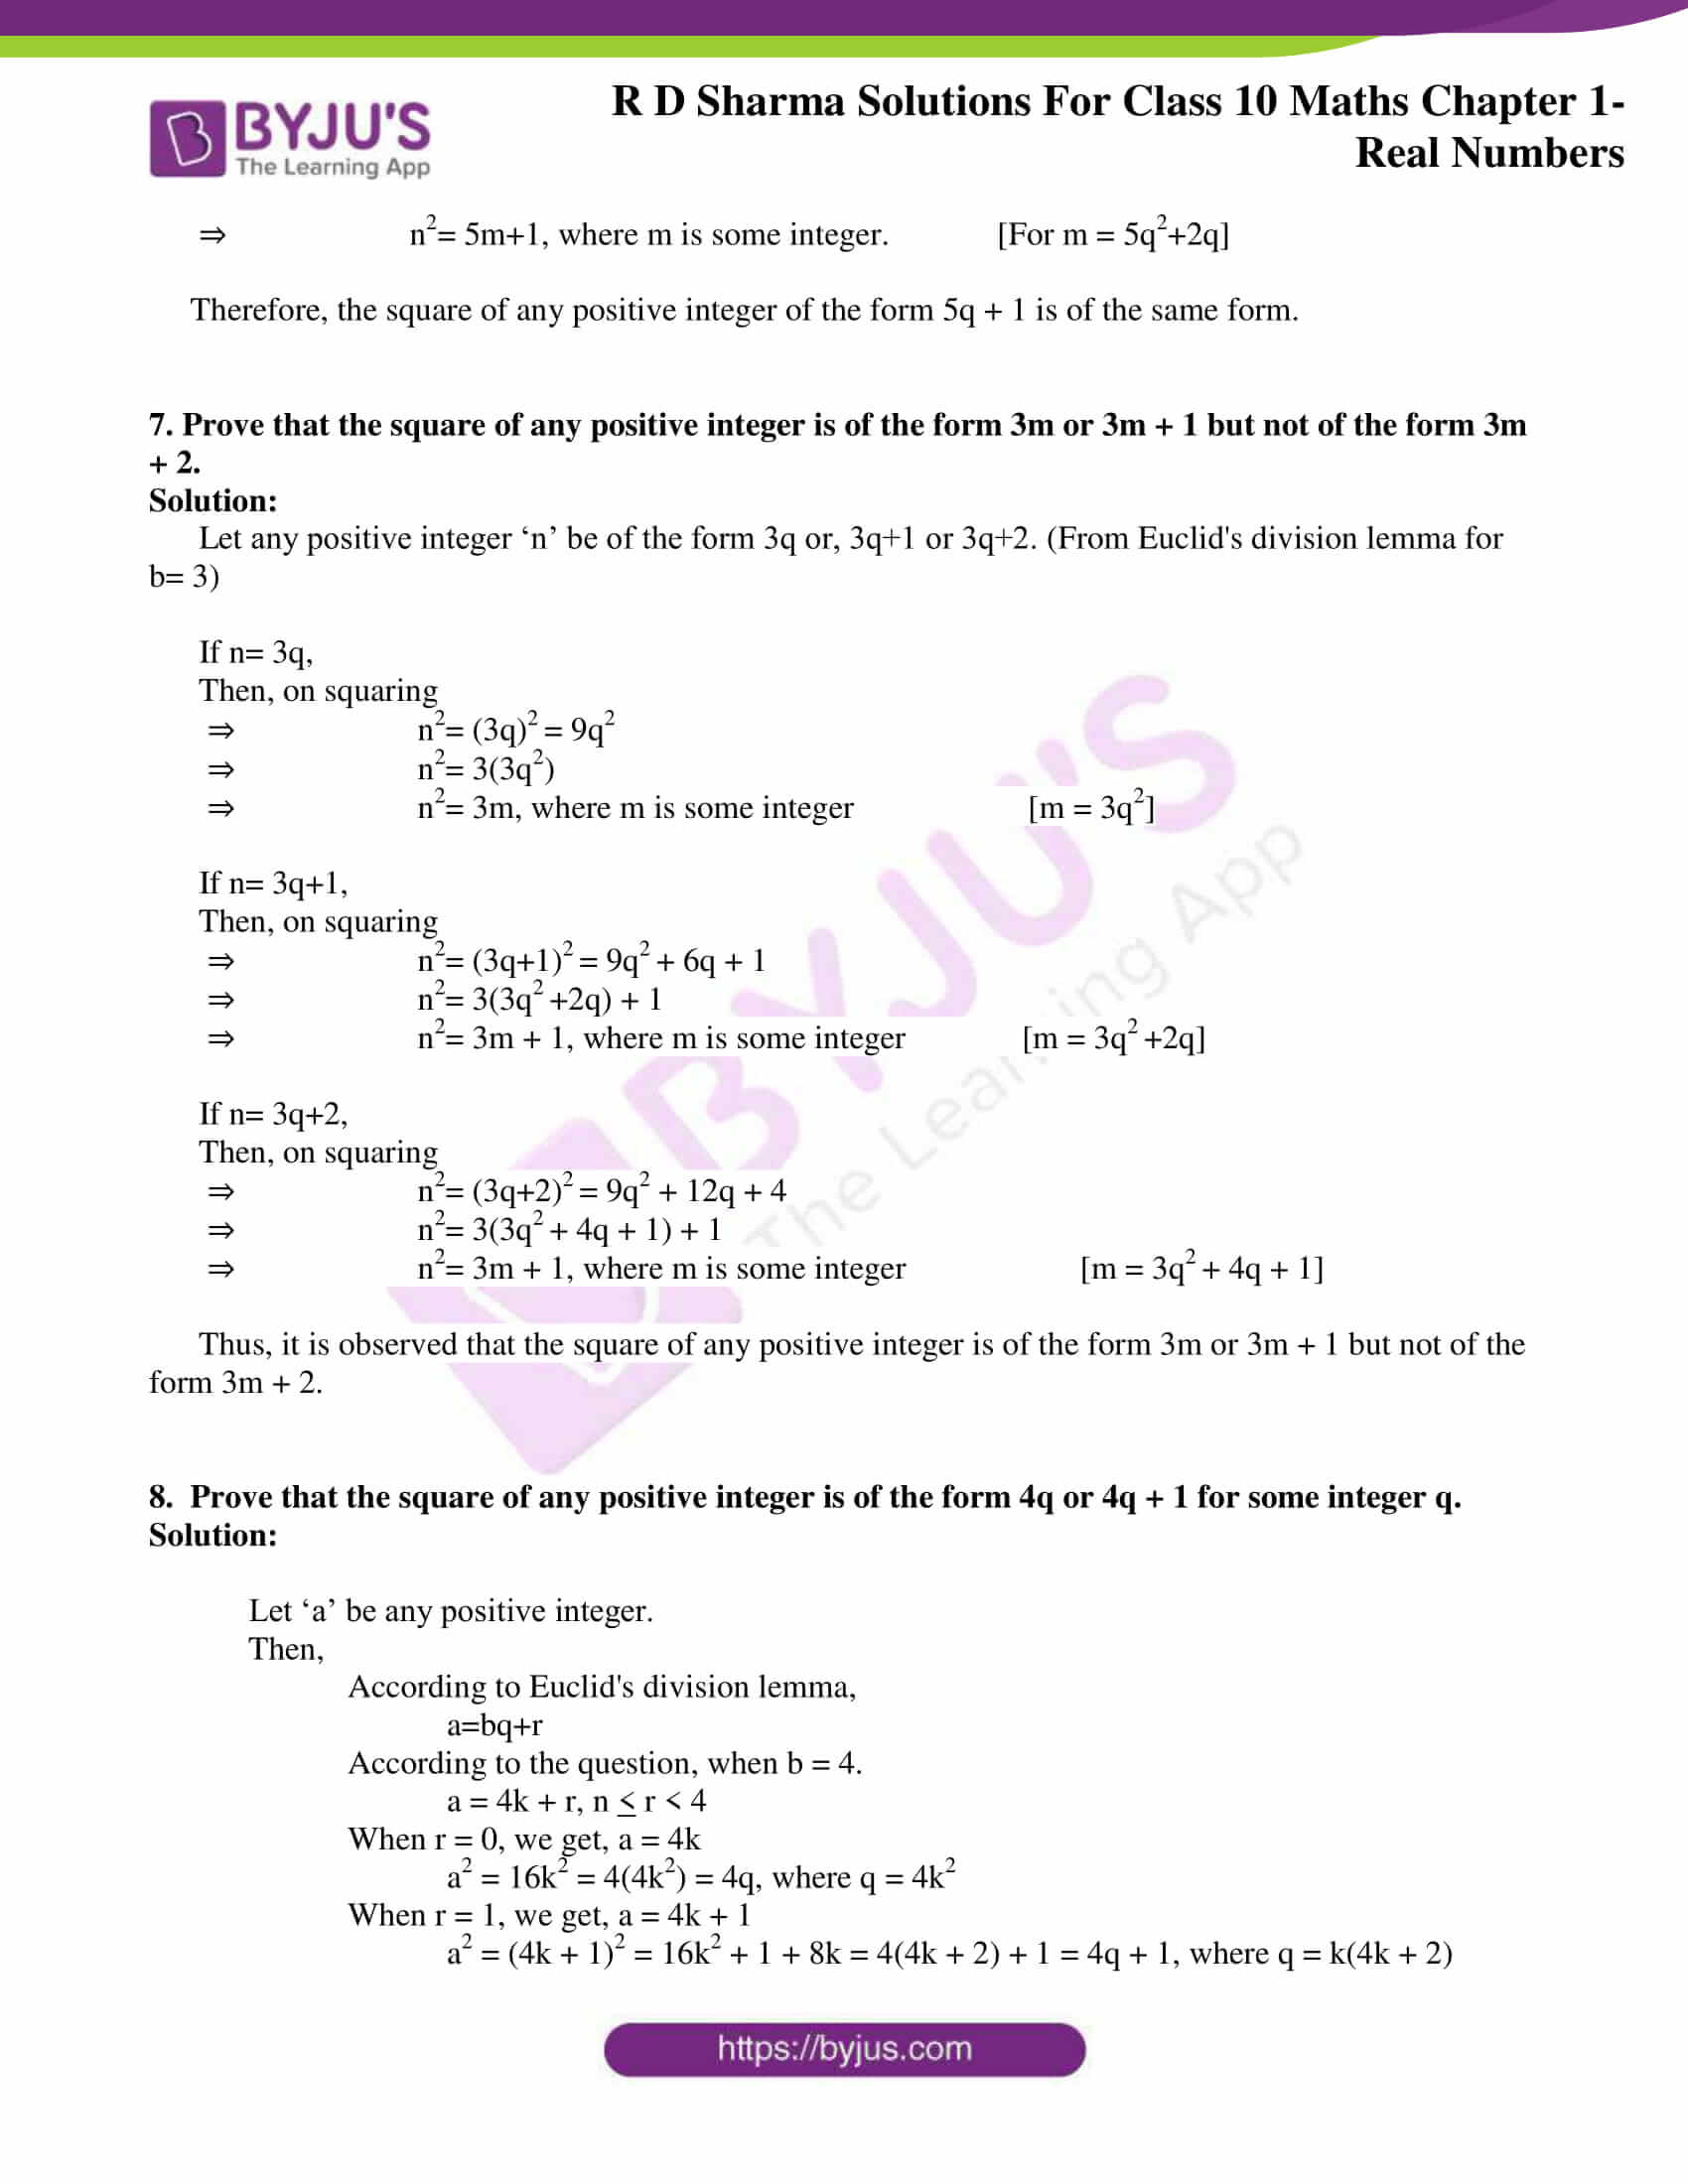 rd sharma class 10 chapter 1 real numbers solutions exercise 1 05